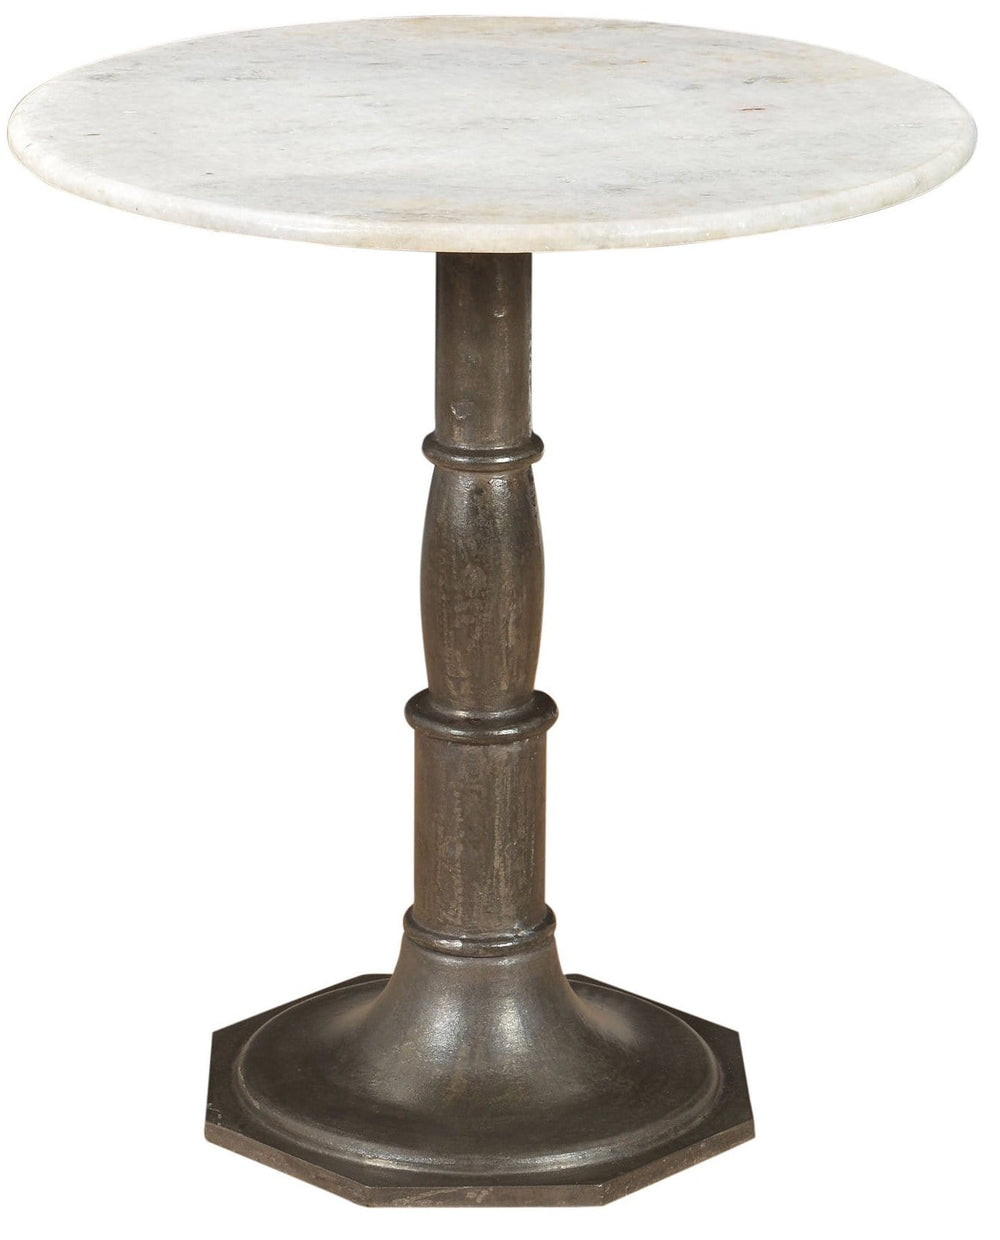 Lucy Side Table, Carbon Wash  - Furniture - Accent Tables - End Tables